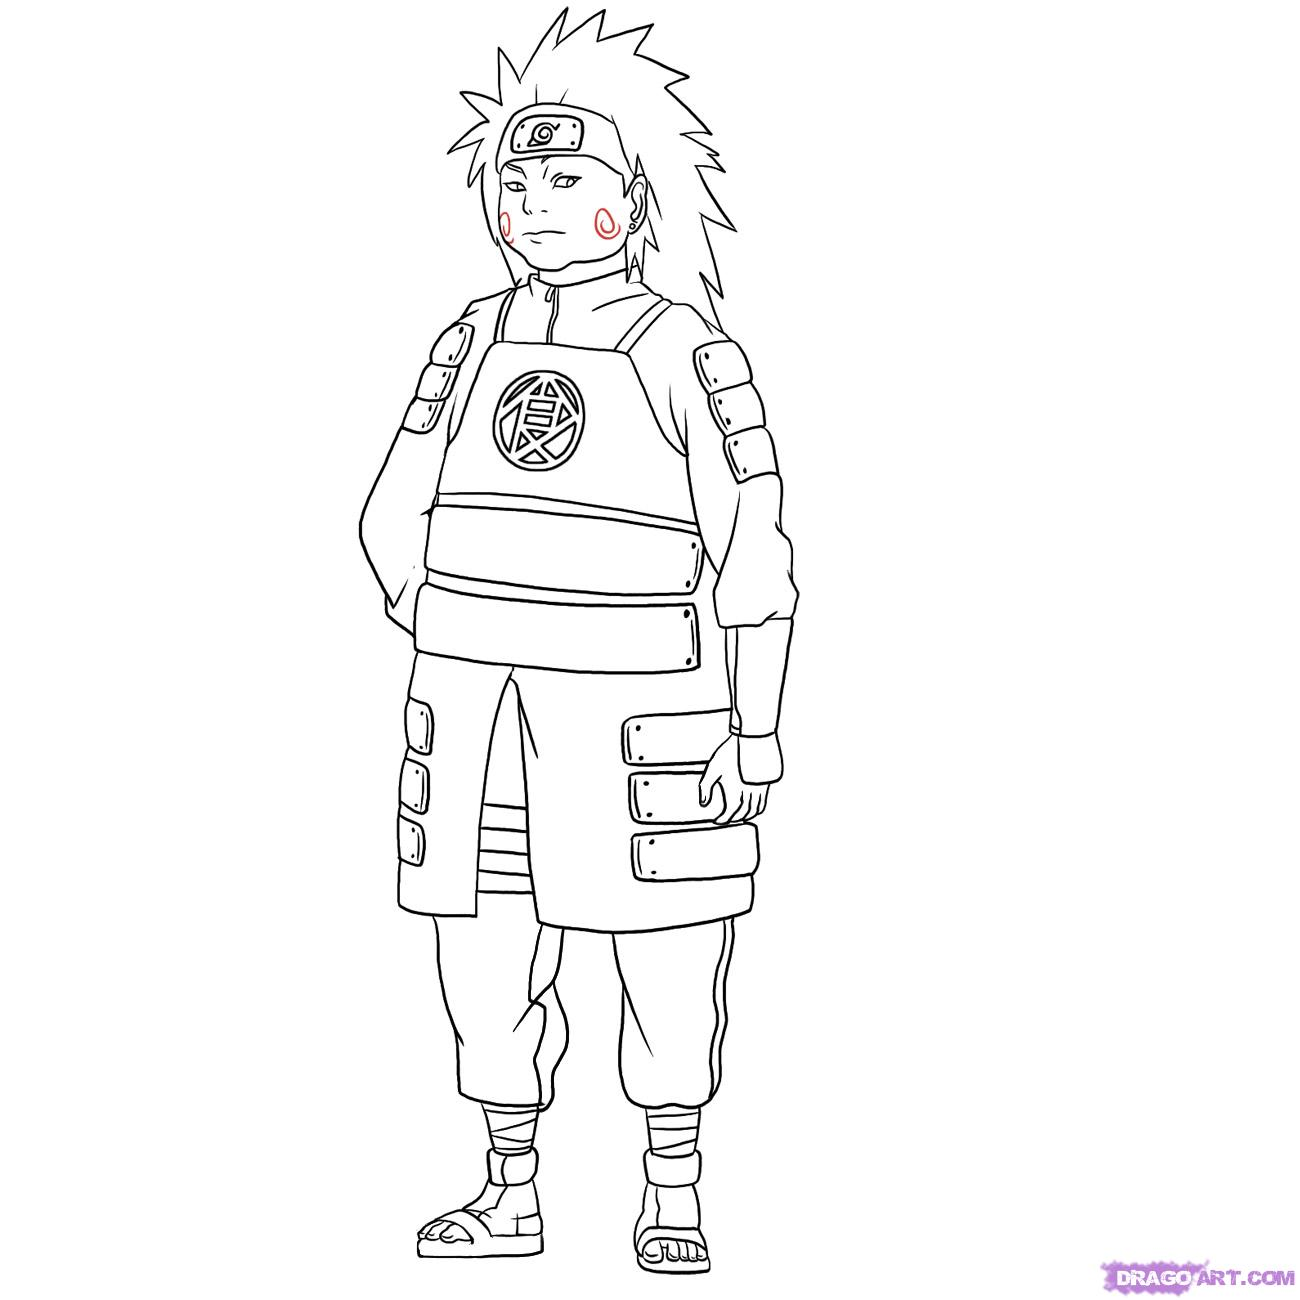 Drawn naruto outline Draw Naruto Characters to how